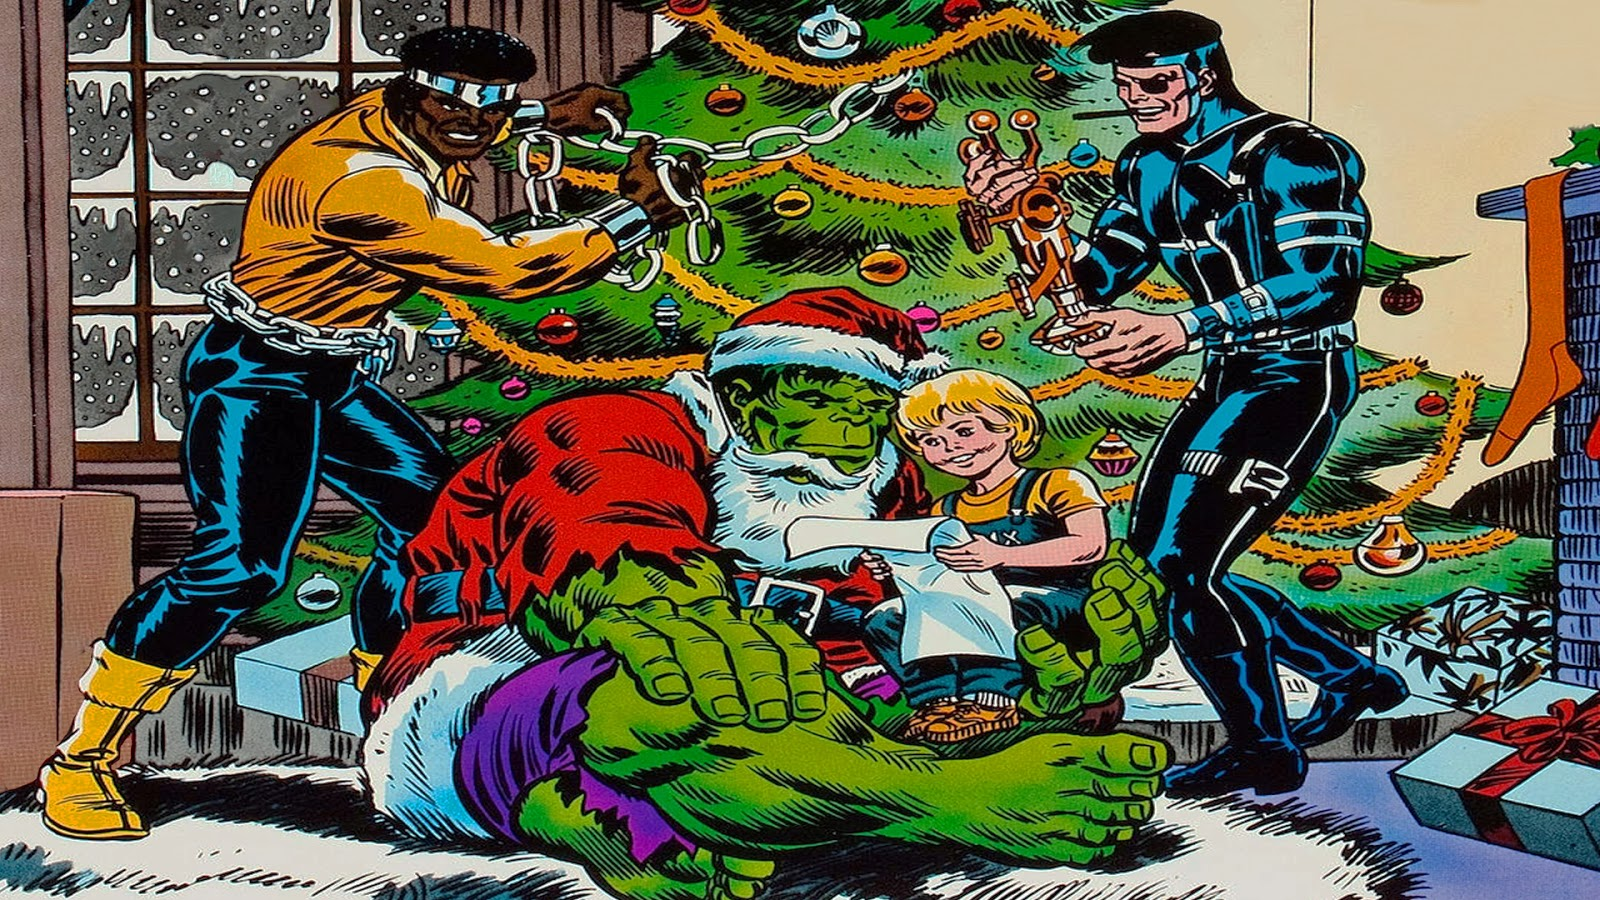 Comic Book Cover Backgrounds ~ Neato coolville comic book wallpaper more christmas covers